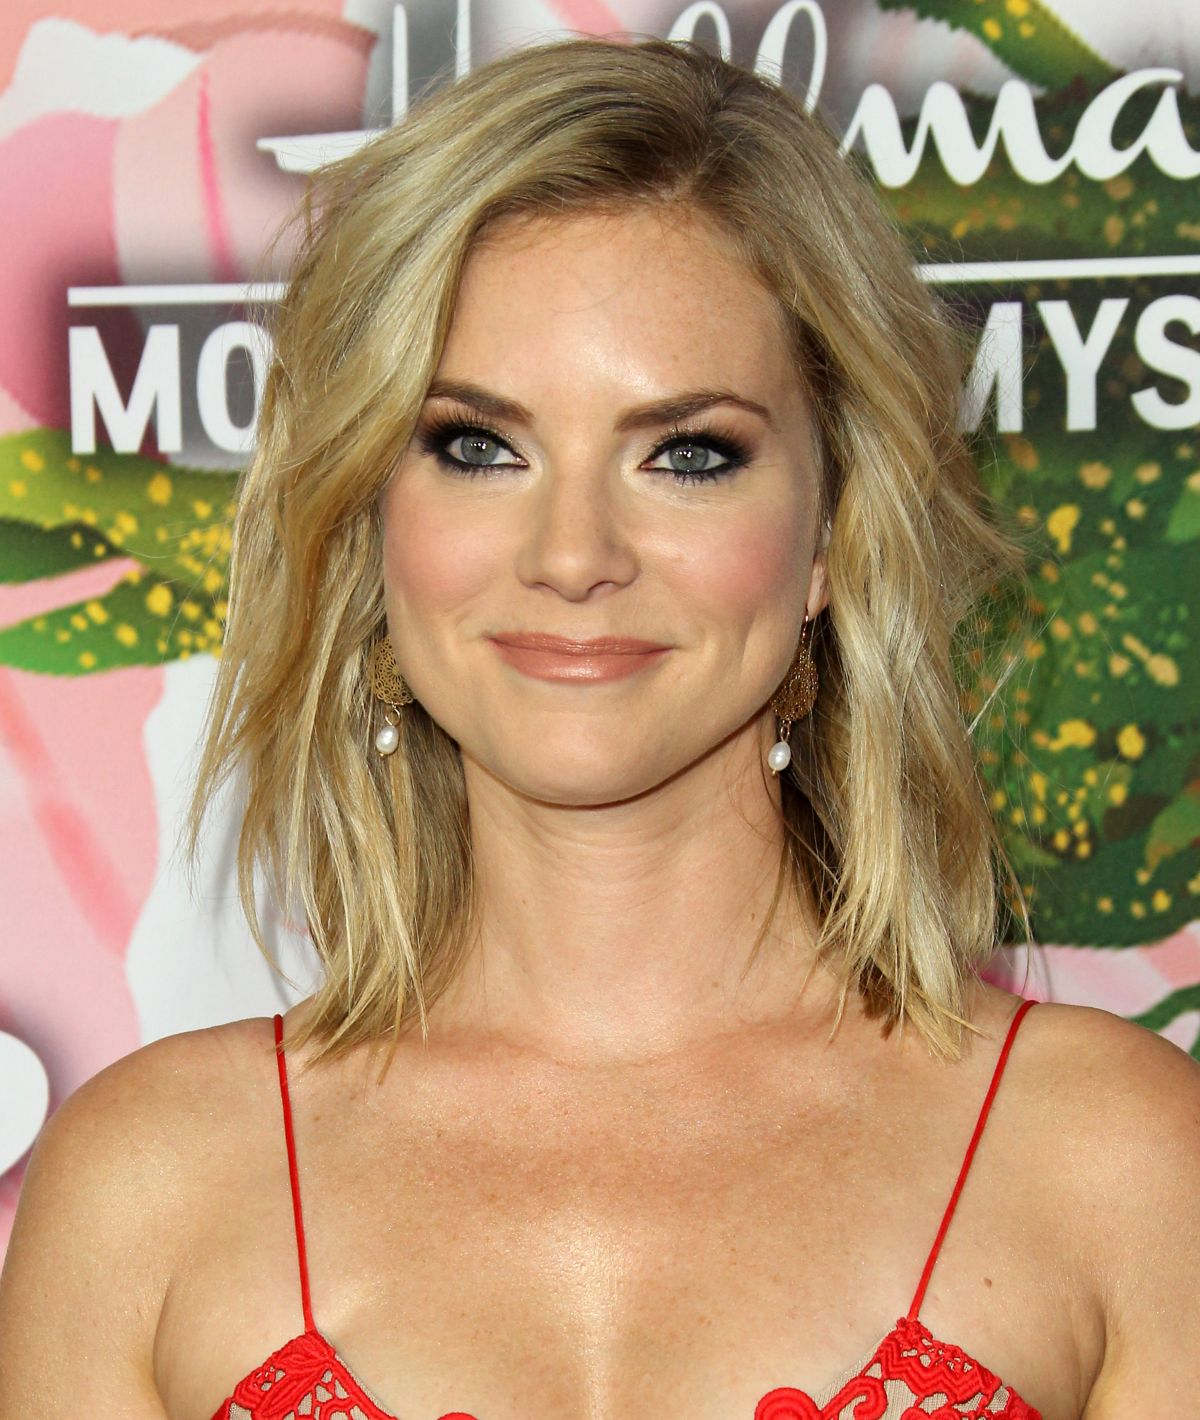 Instagram Cindy Busby naked photo 2017